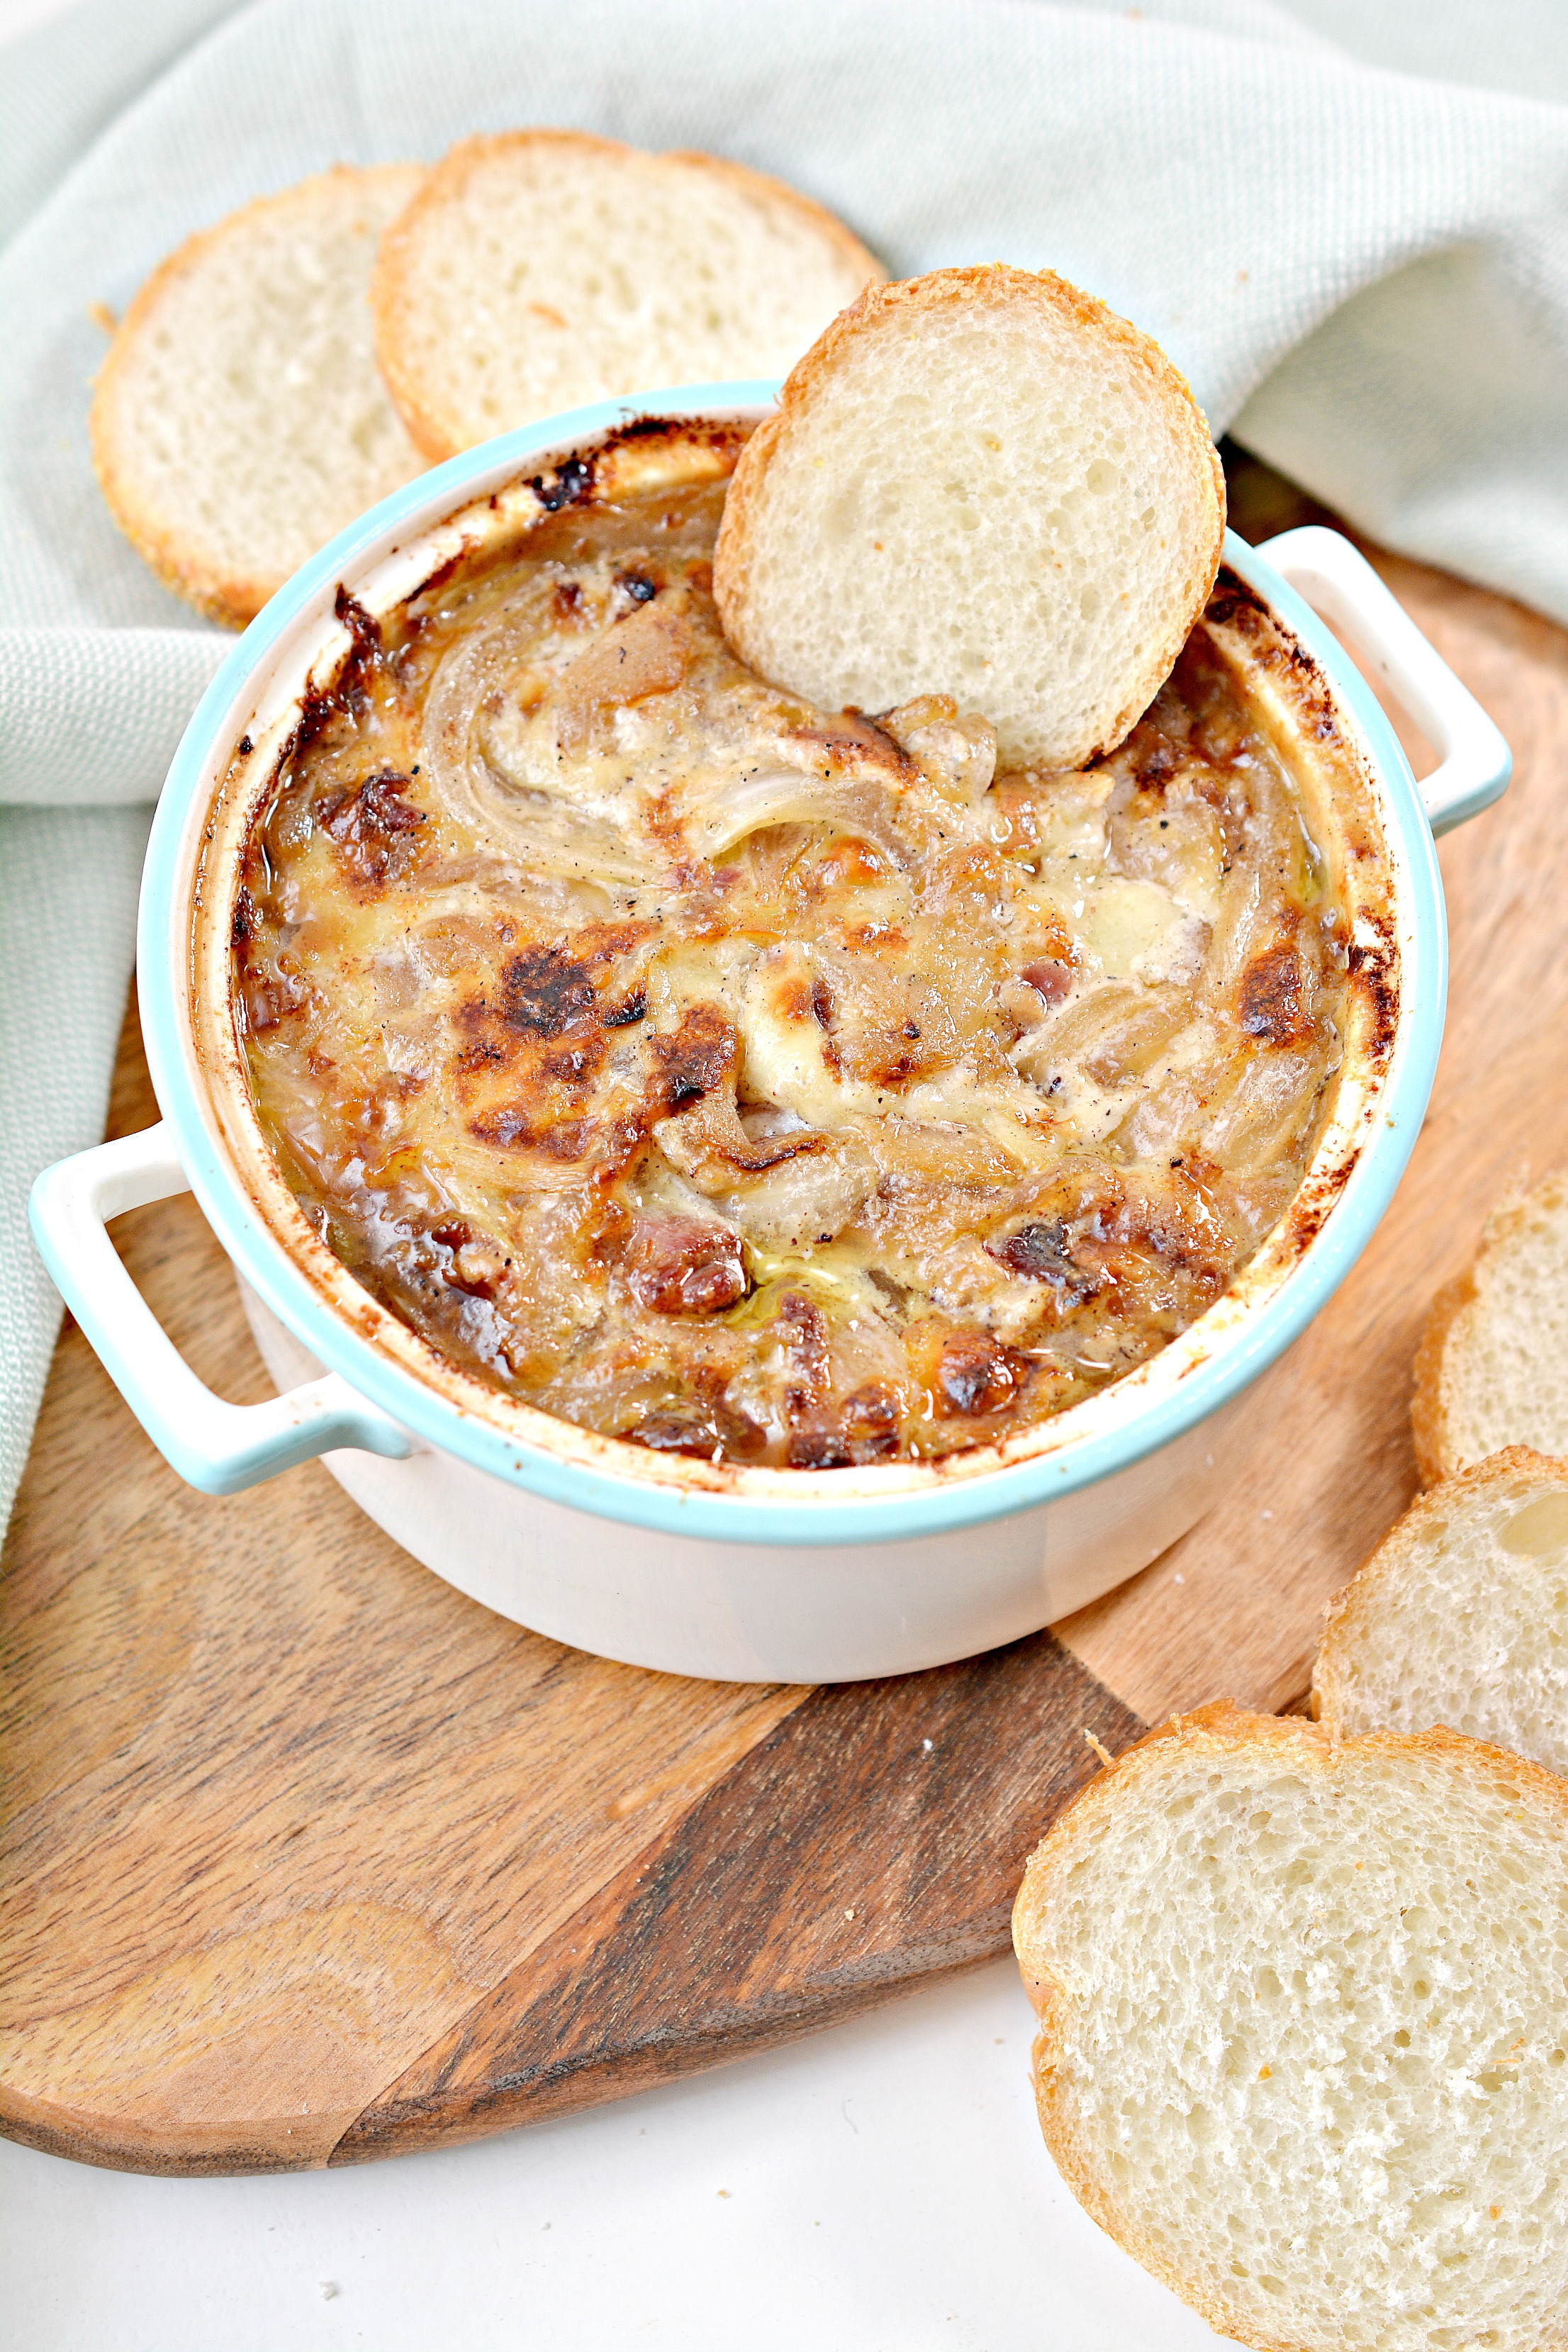 Hot Caramelized Onion and Bacon Dip is the ultimate super easy appetizer to make for any casual get together any time of the year!